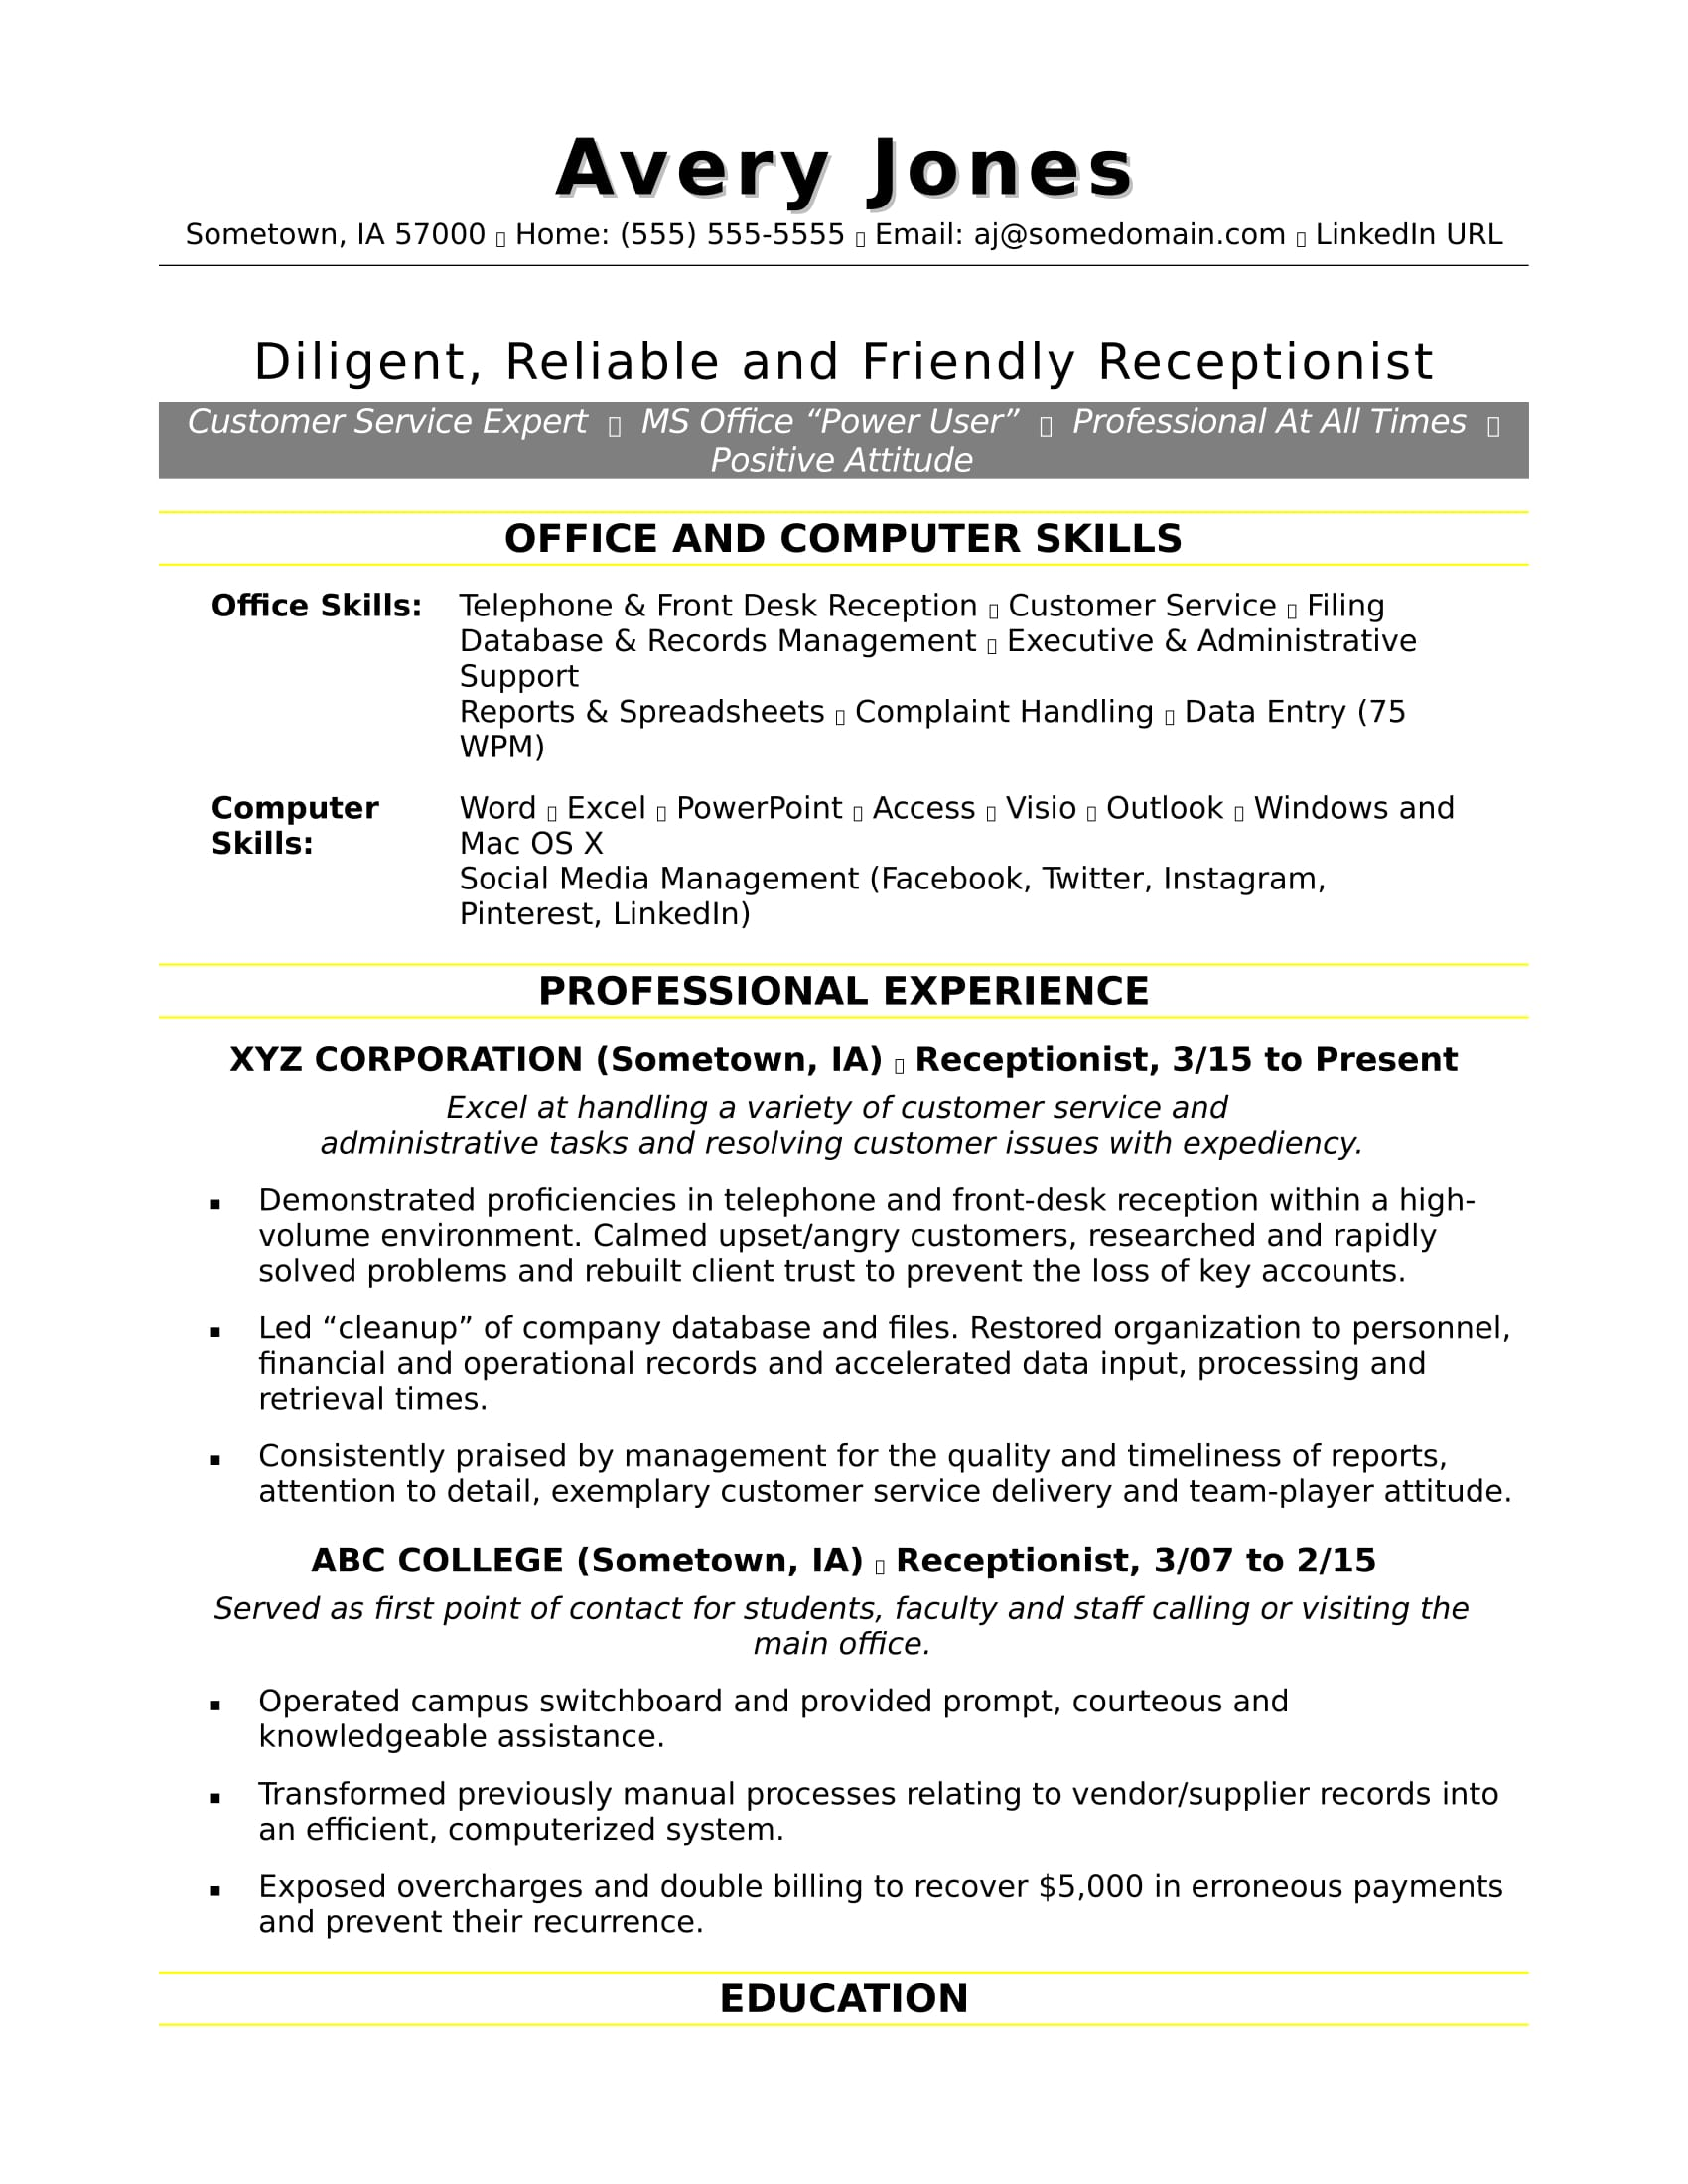 receptionist resume sample monster great skills and abilities for genius free templates Resume Great Skills And Abilities For Resume